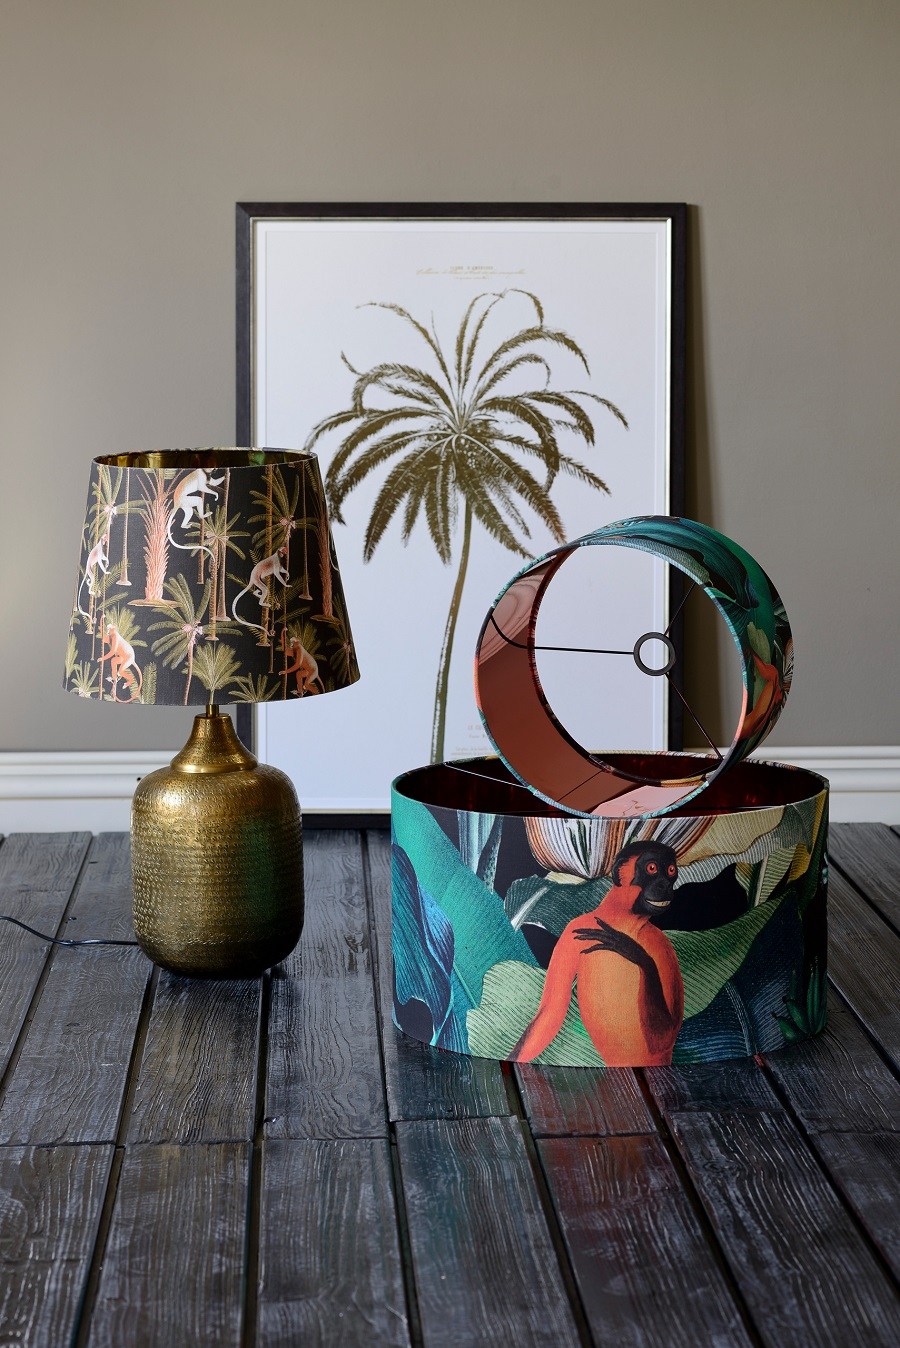 Introducing Mind The Gap for Eclectic Home Accessories